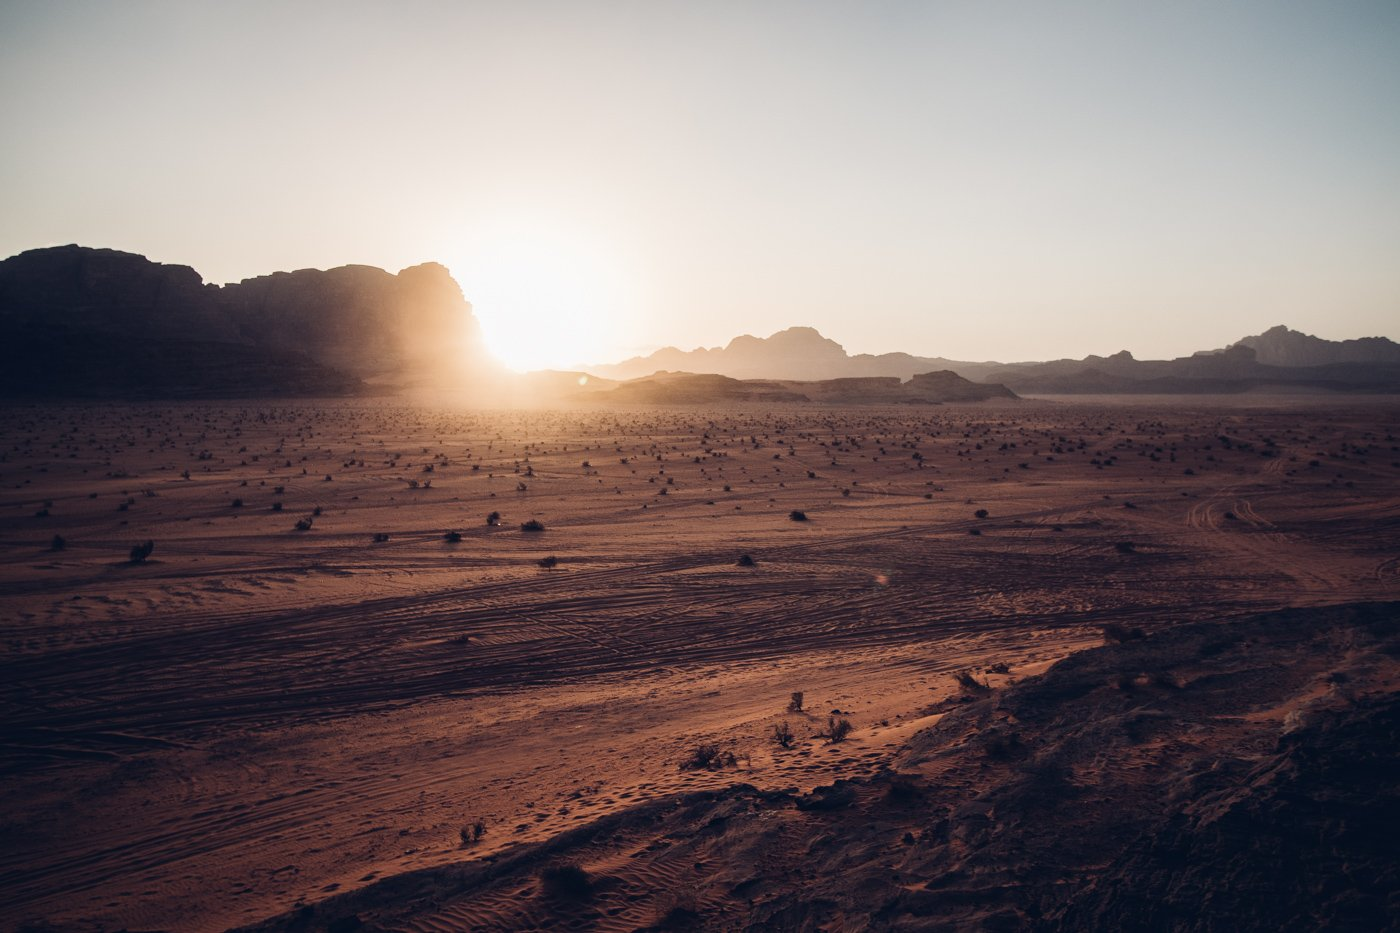 Sunset in Wadi Rum Desert as shot with Canon 200D